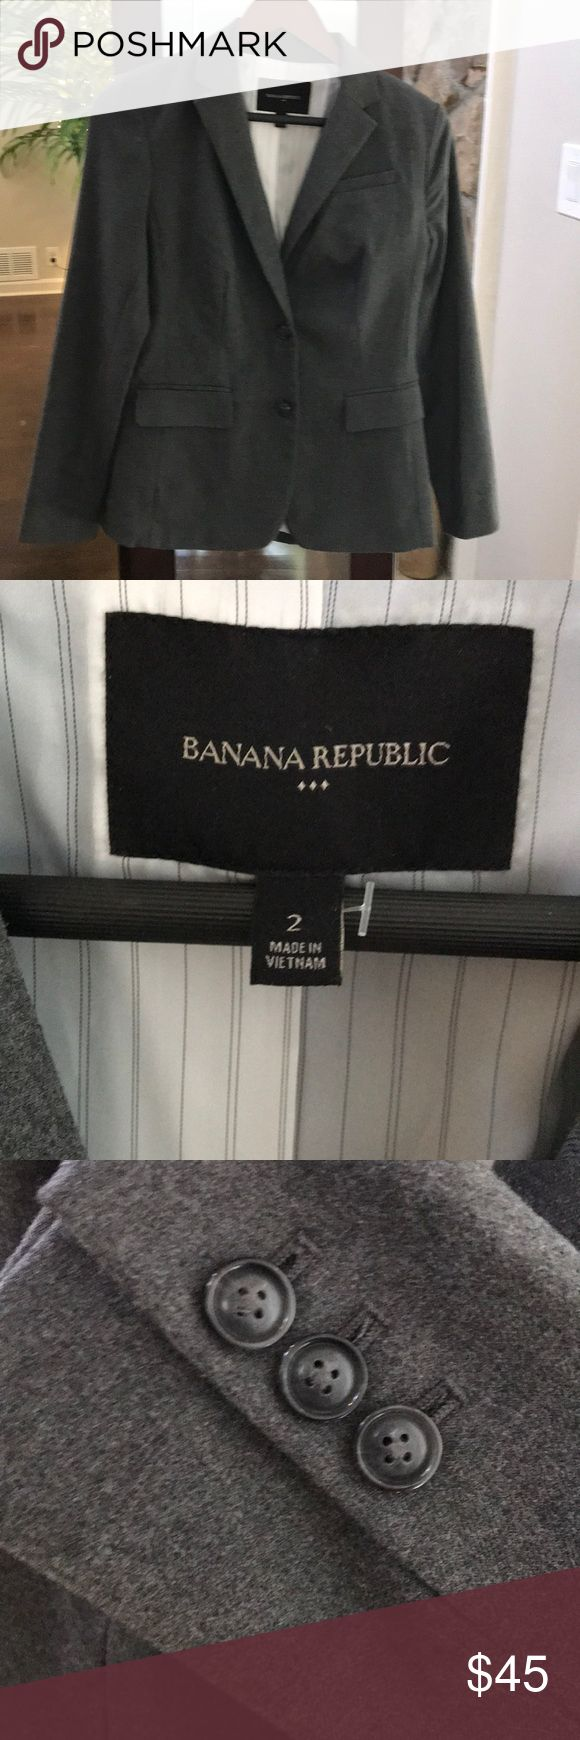 """NWOT - Banana Republic Gray Button Blazer Purchased and never worn! Tags removed. Beautiful charcoal grey suit jacket with pinstripe lining. Great quality fabric and stitching. Front flap pocket closing hem still have not been """"unsealed"""". Moving soon so make me an offer! I included pictures of the item number above. Banana Republic Jackets & Coats Blazers"""